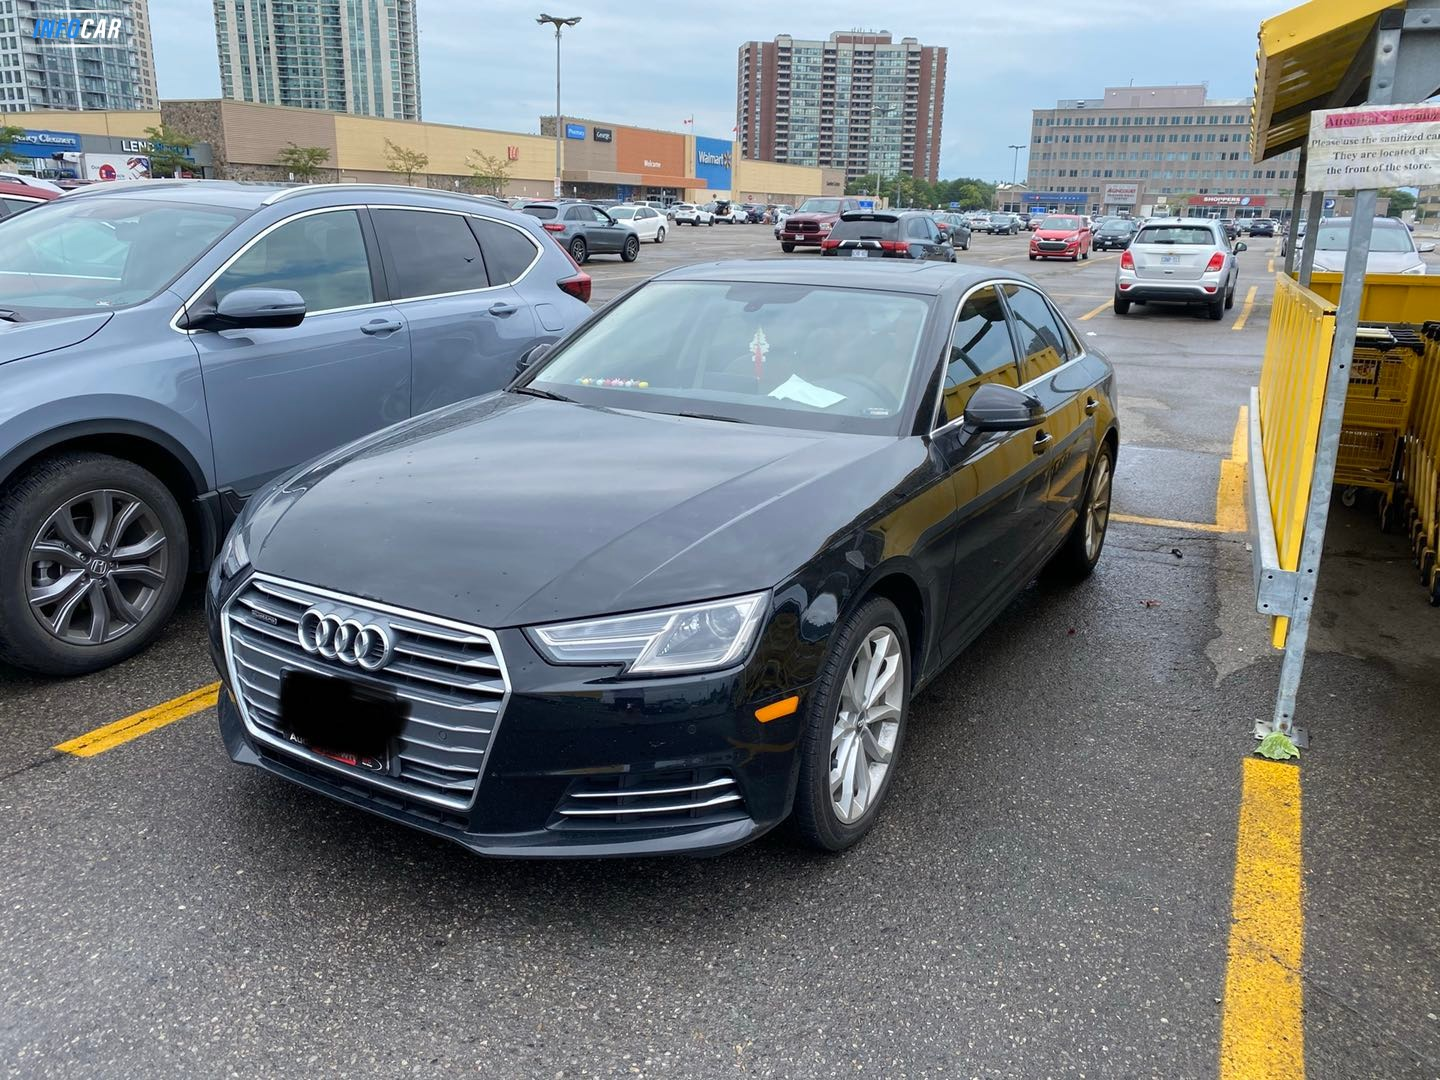 2017 Audi A4  - INFOCAR - Toronto's Most Comprehensive New and Used Auto Trading Platform